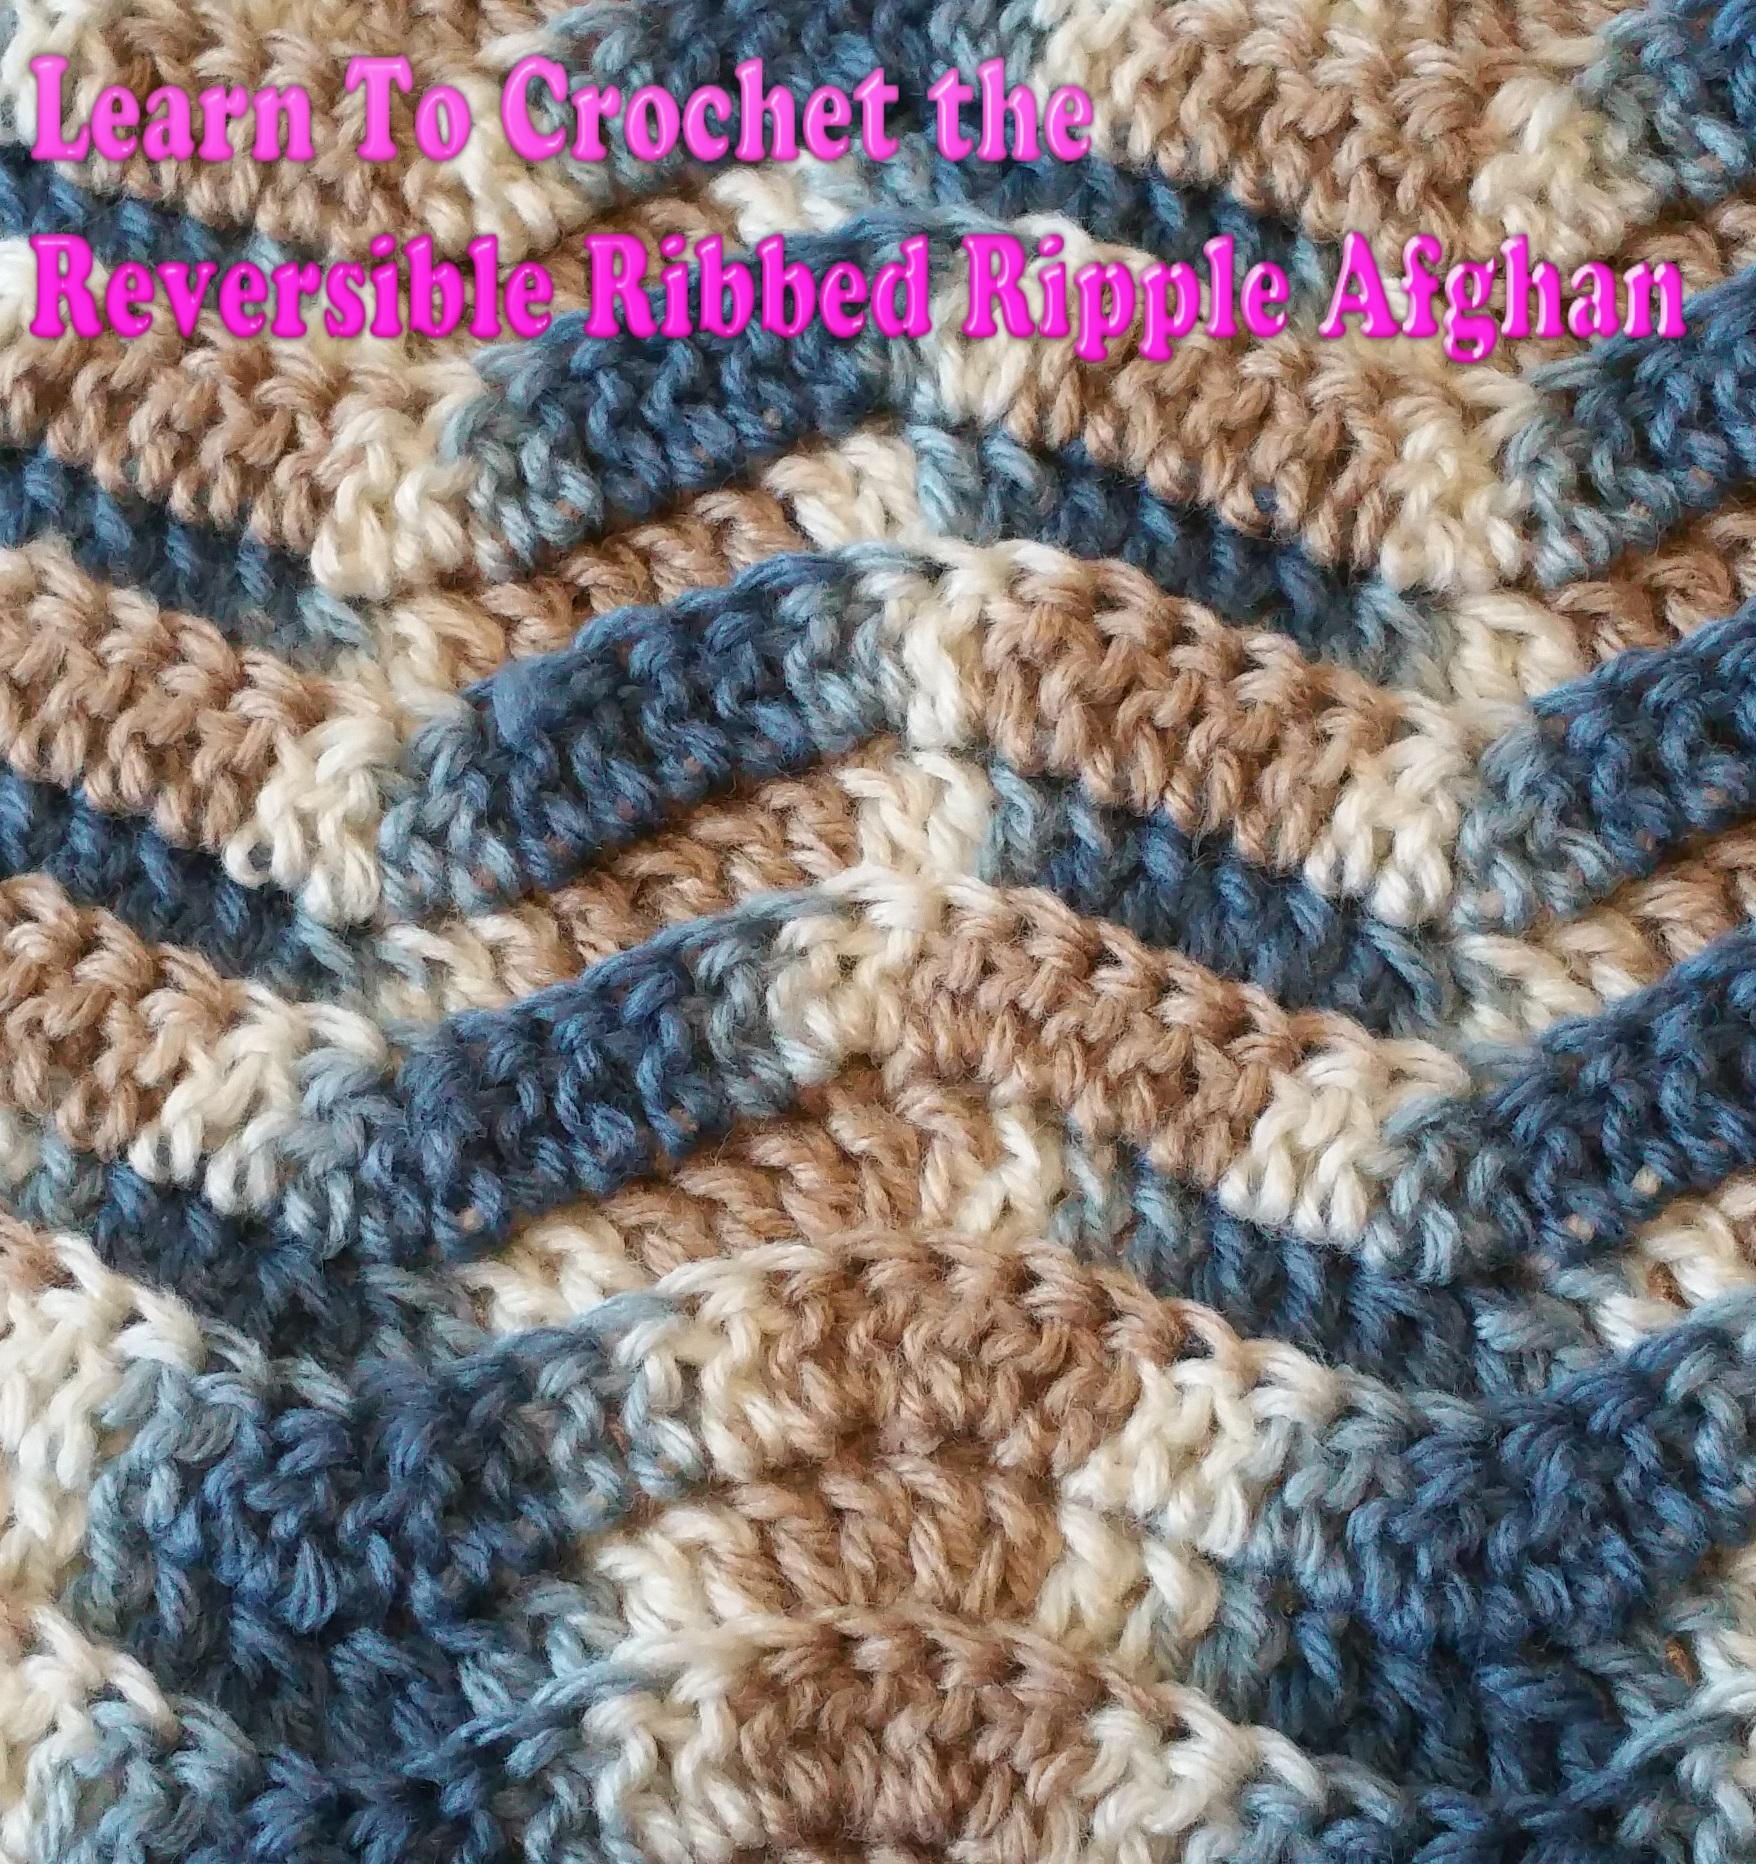 You Can Crochet Too!: How to Crochet a Ribbed Ripple Afghan | Tara ...